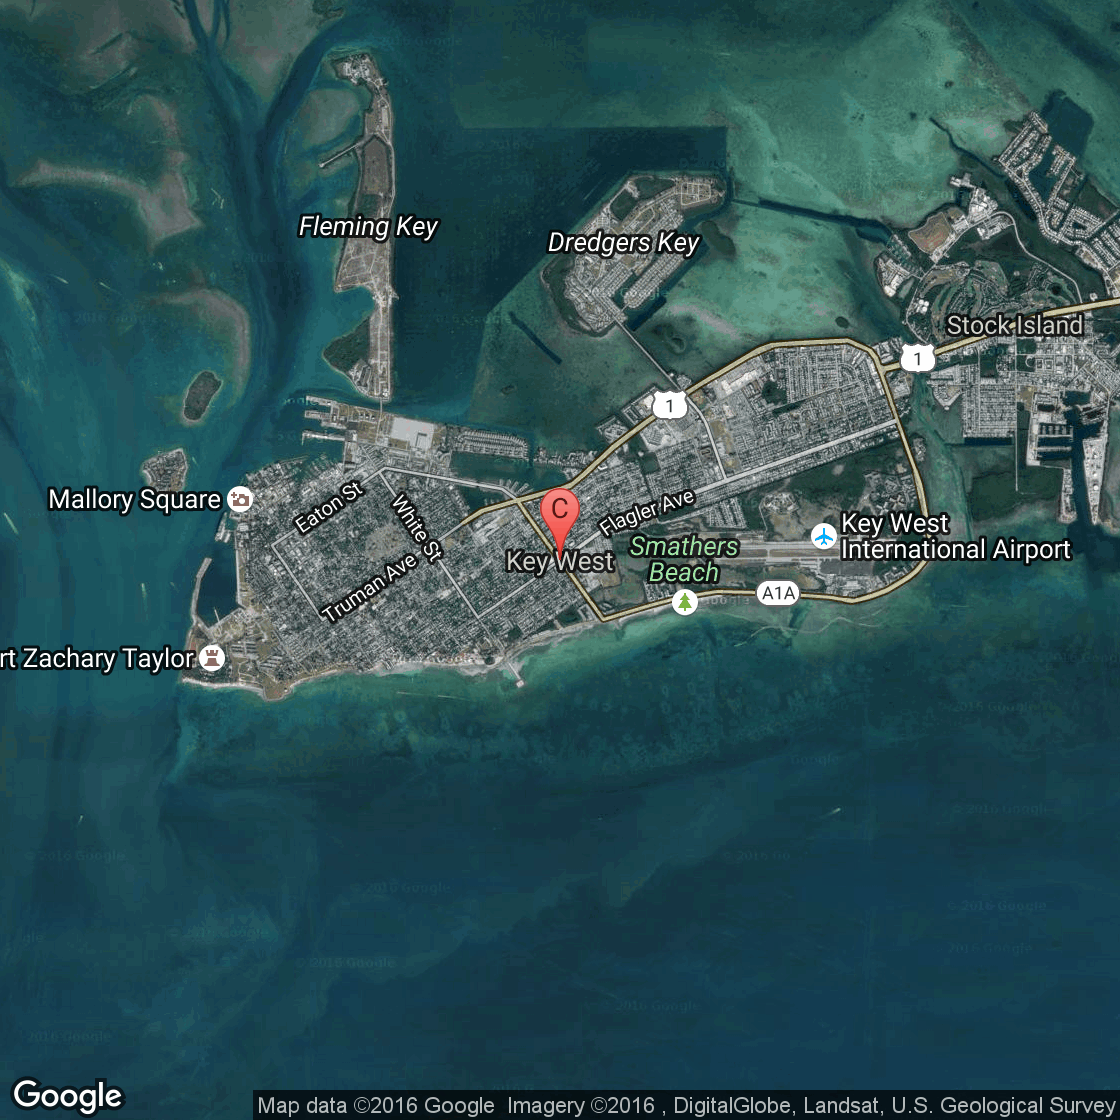 Guided walking tour of historic key west usa today gumiabroncs Image collections